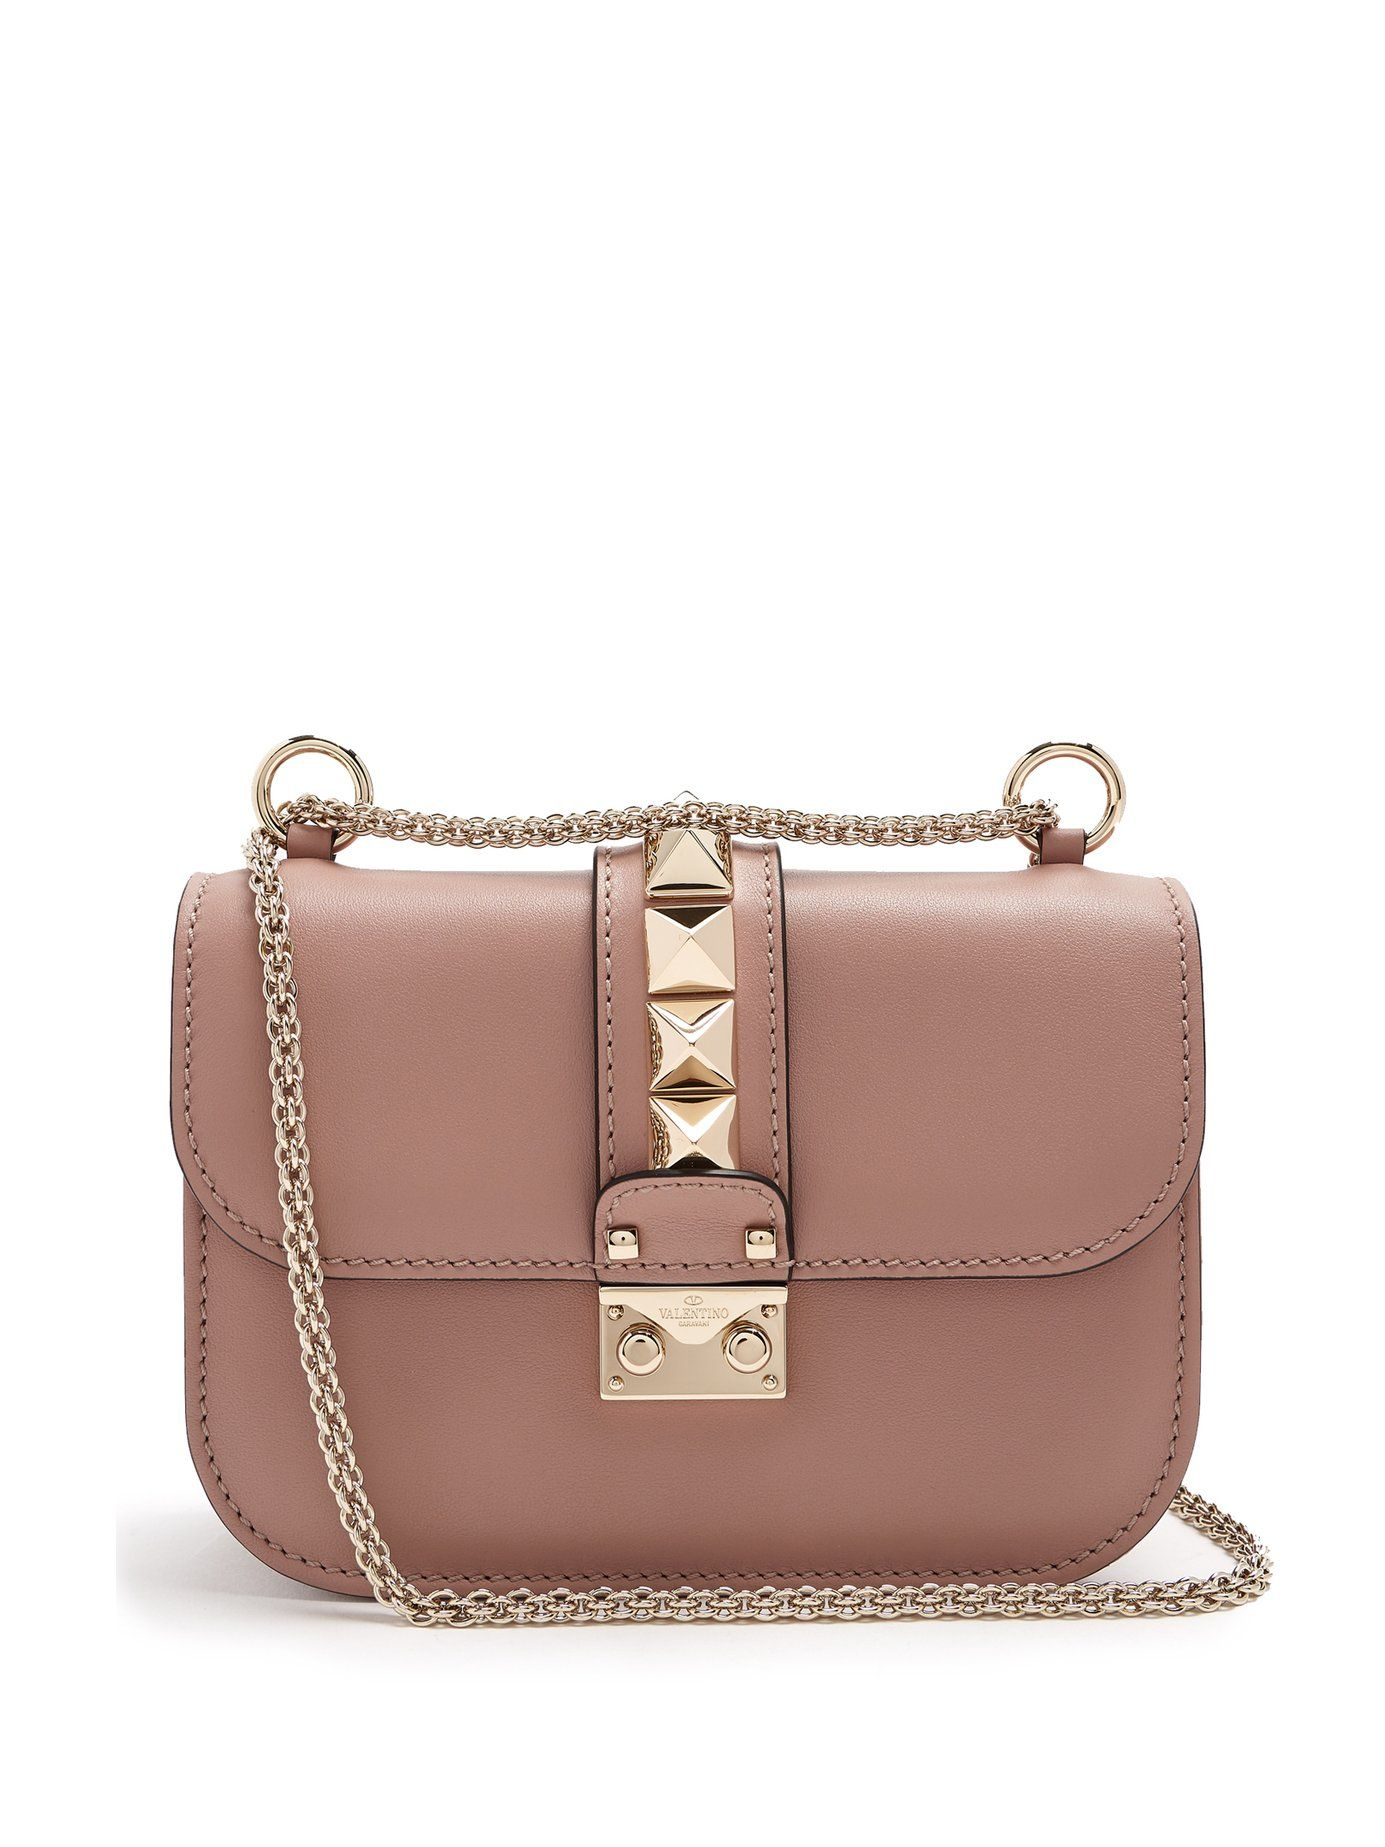 147326a6bd8ccb Lock small leather shoulder bag | Valentino | MATCHESFASHION.COM US ...